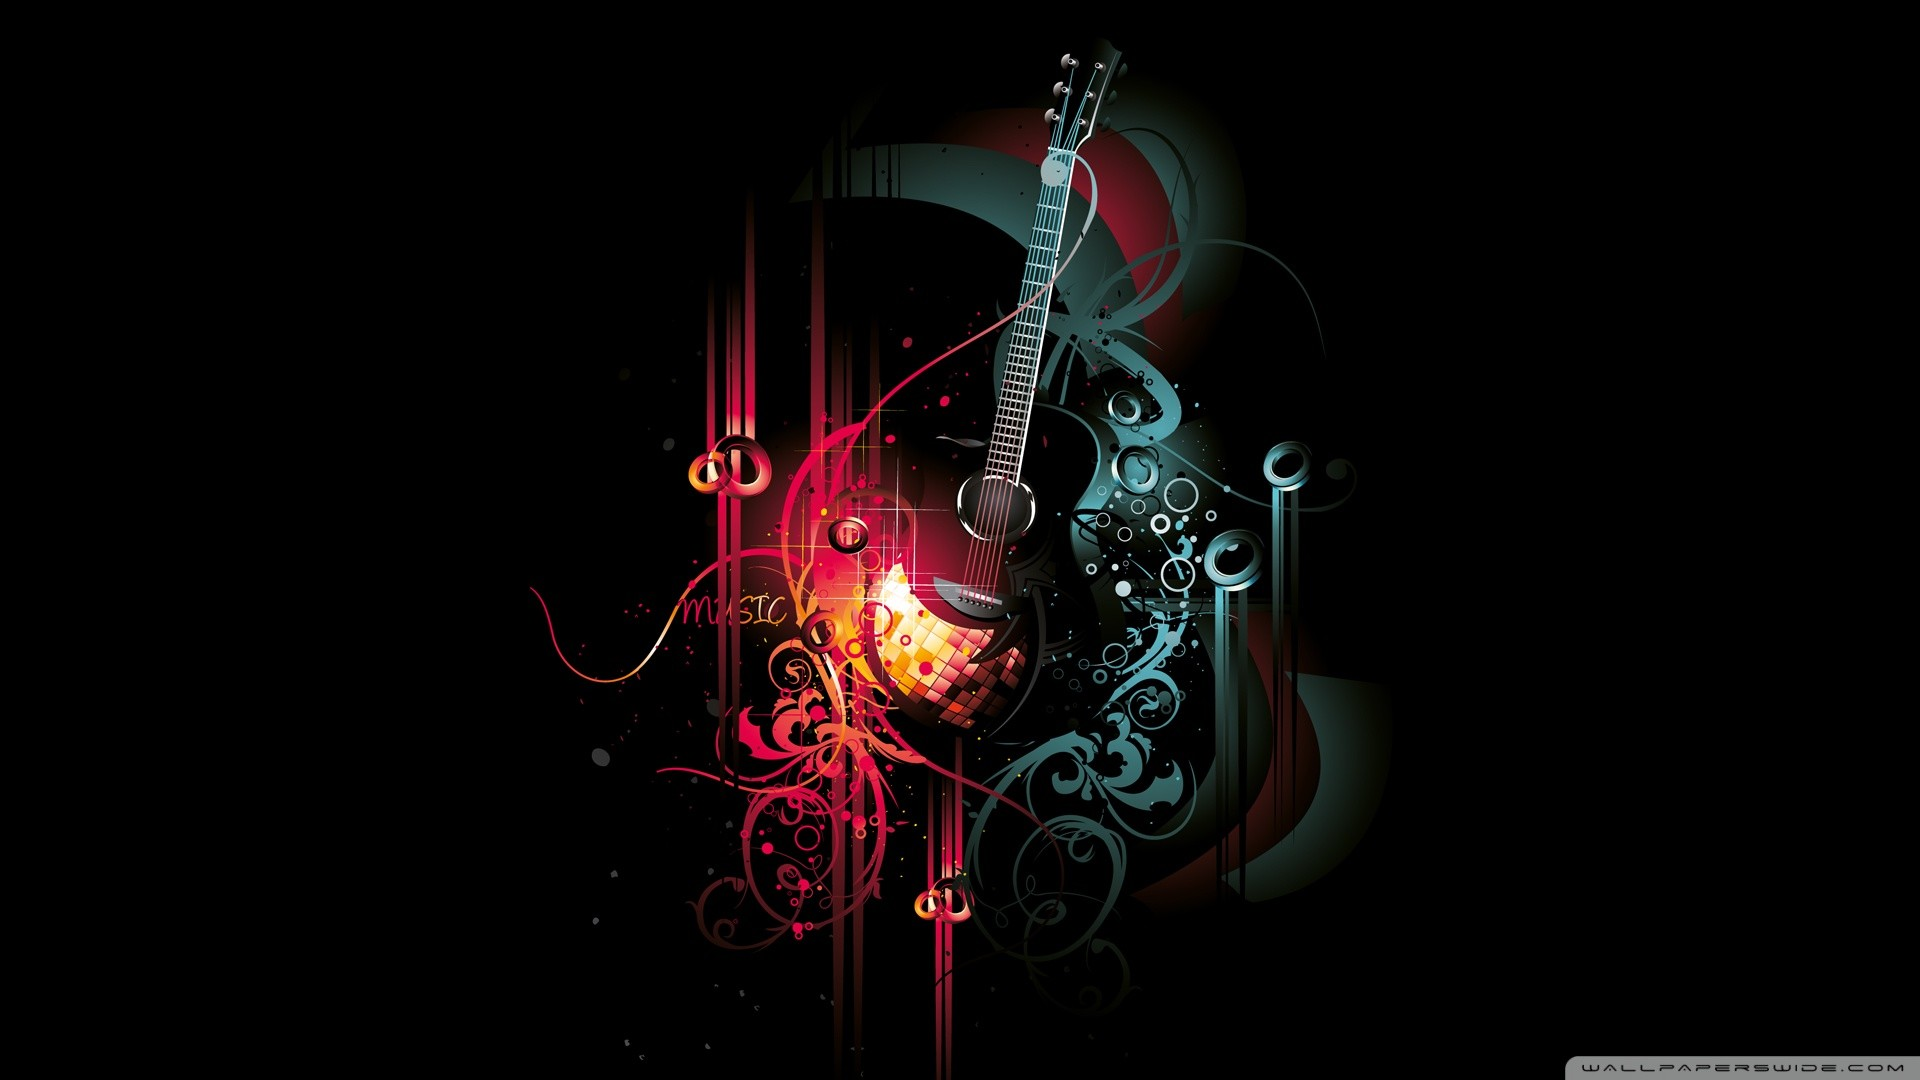 Free Music Wallpapers Music Band Wallpapers Musician Wallpapers